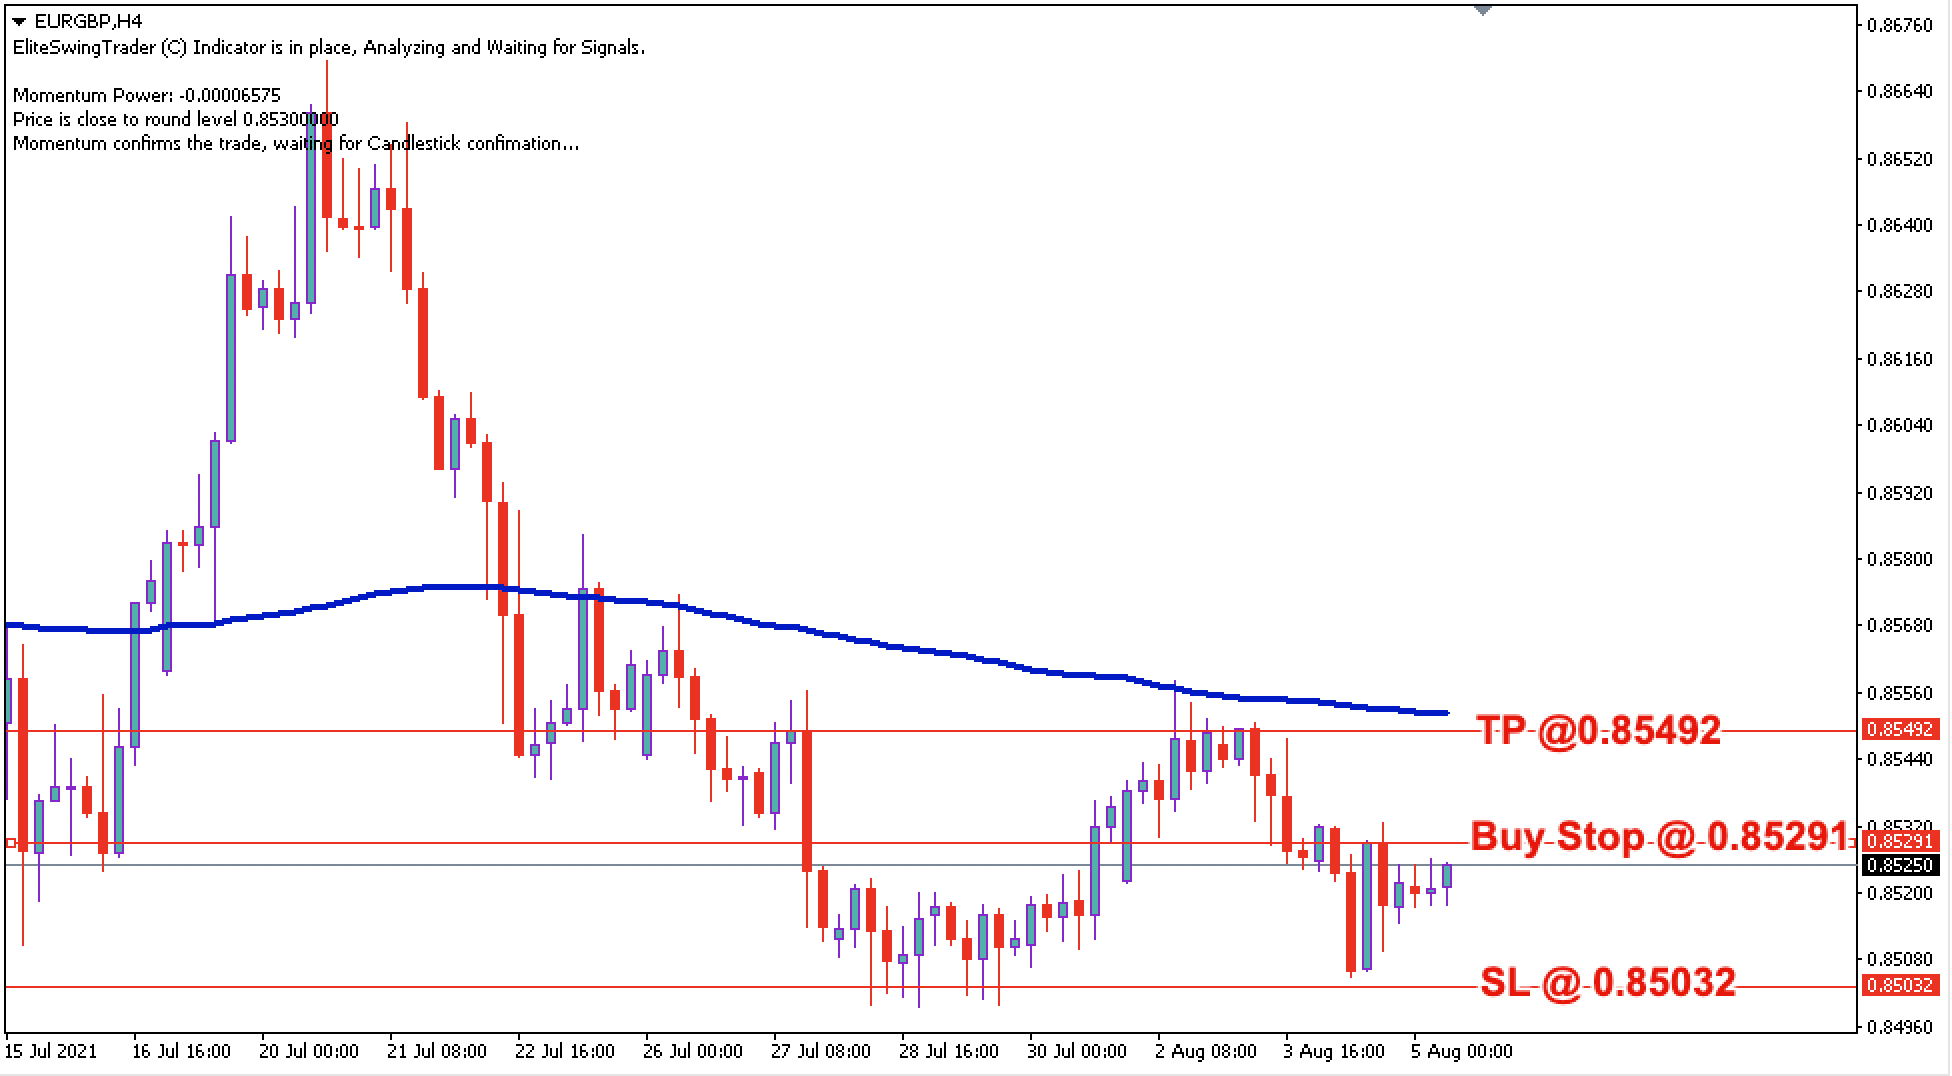 EUR/GBP Daily Price Forecast – 5th August 2021